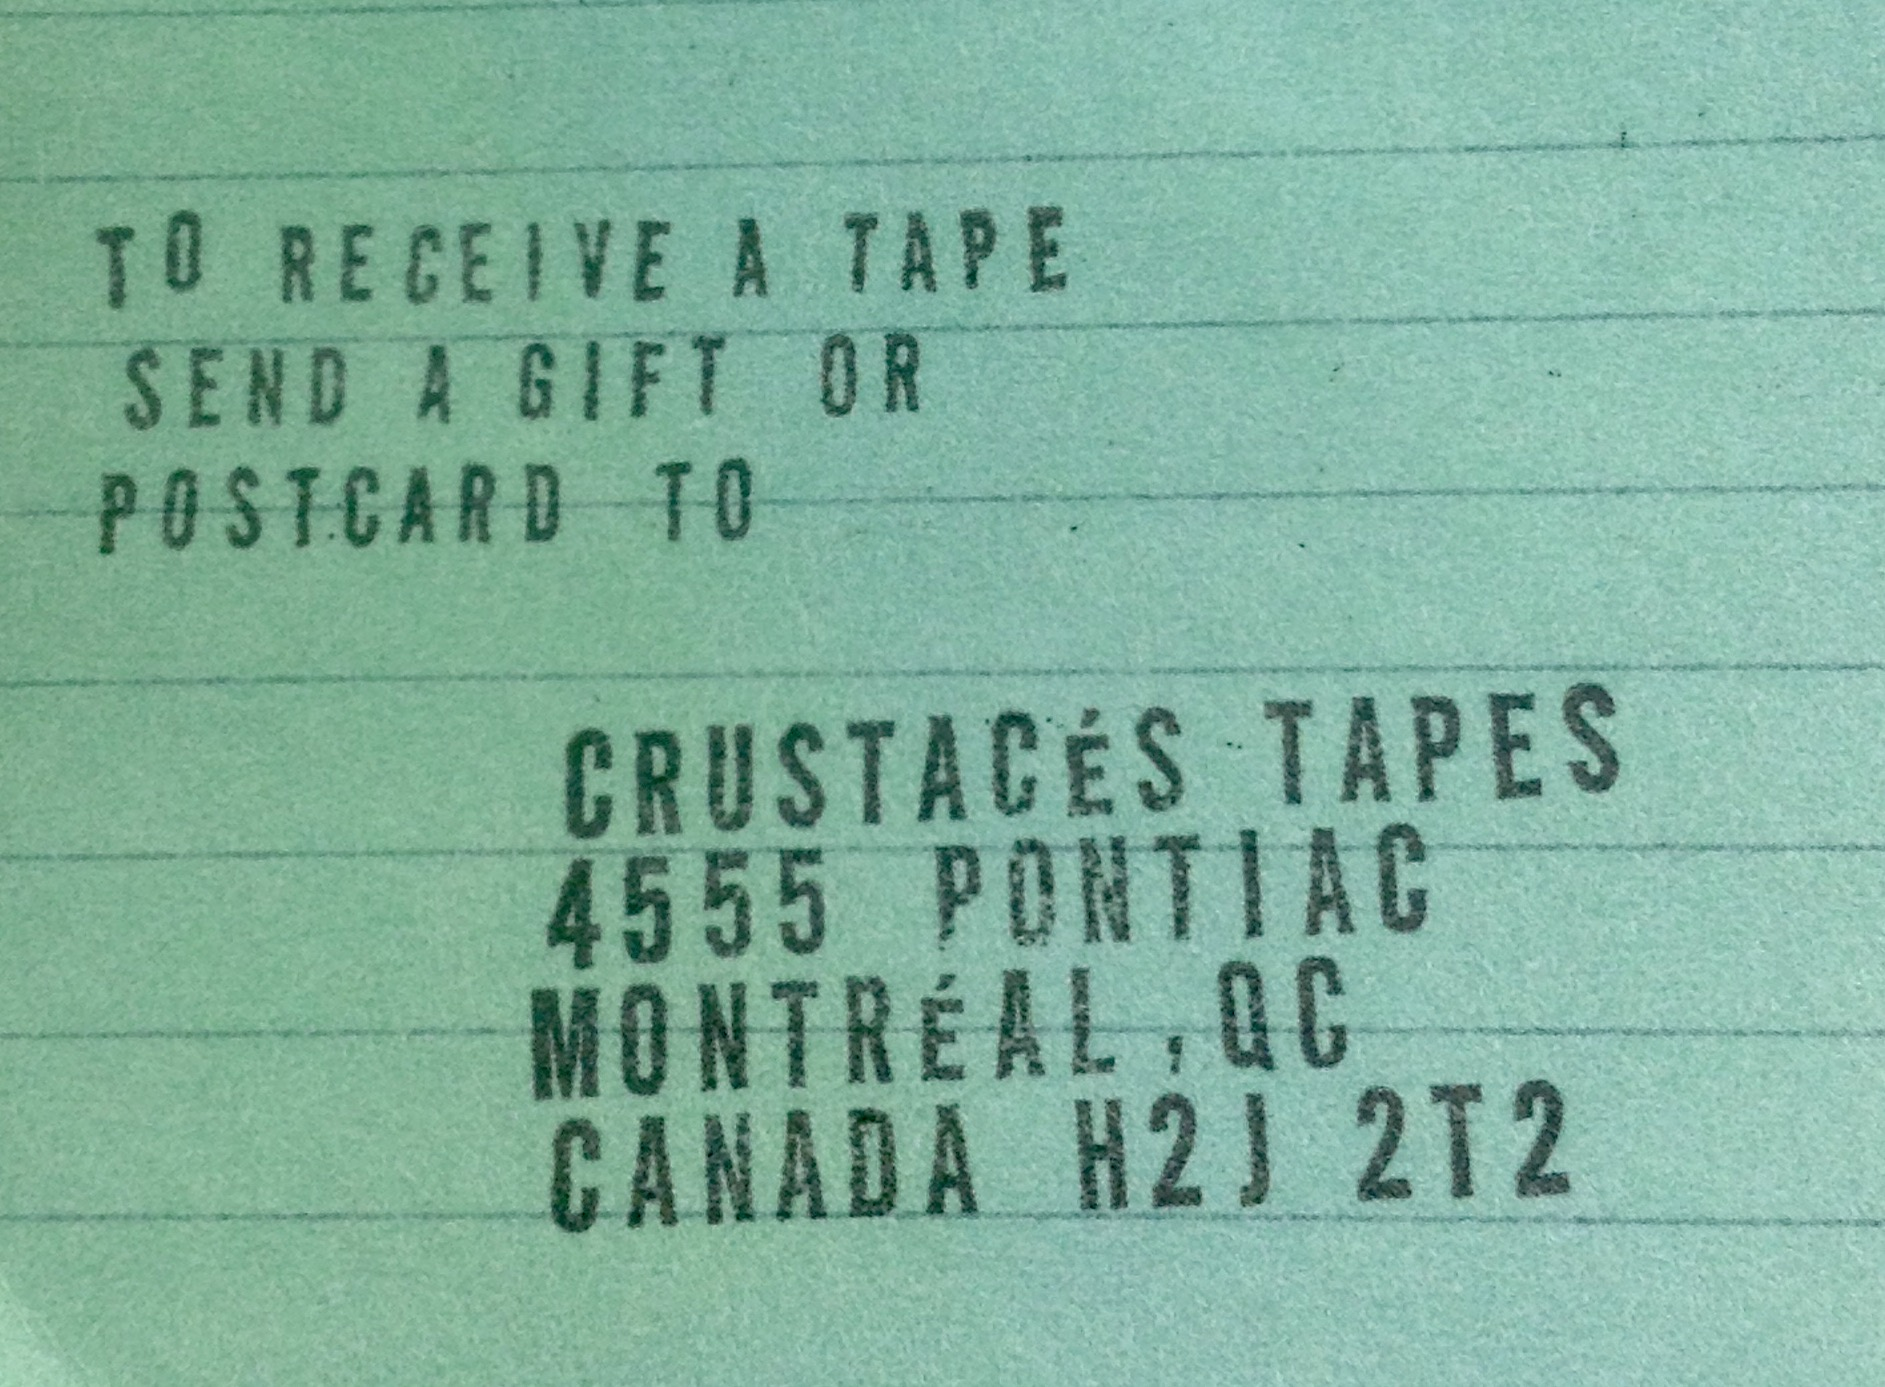 crustacés tape postal address